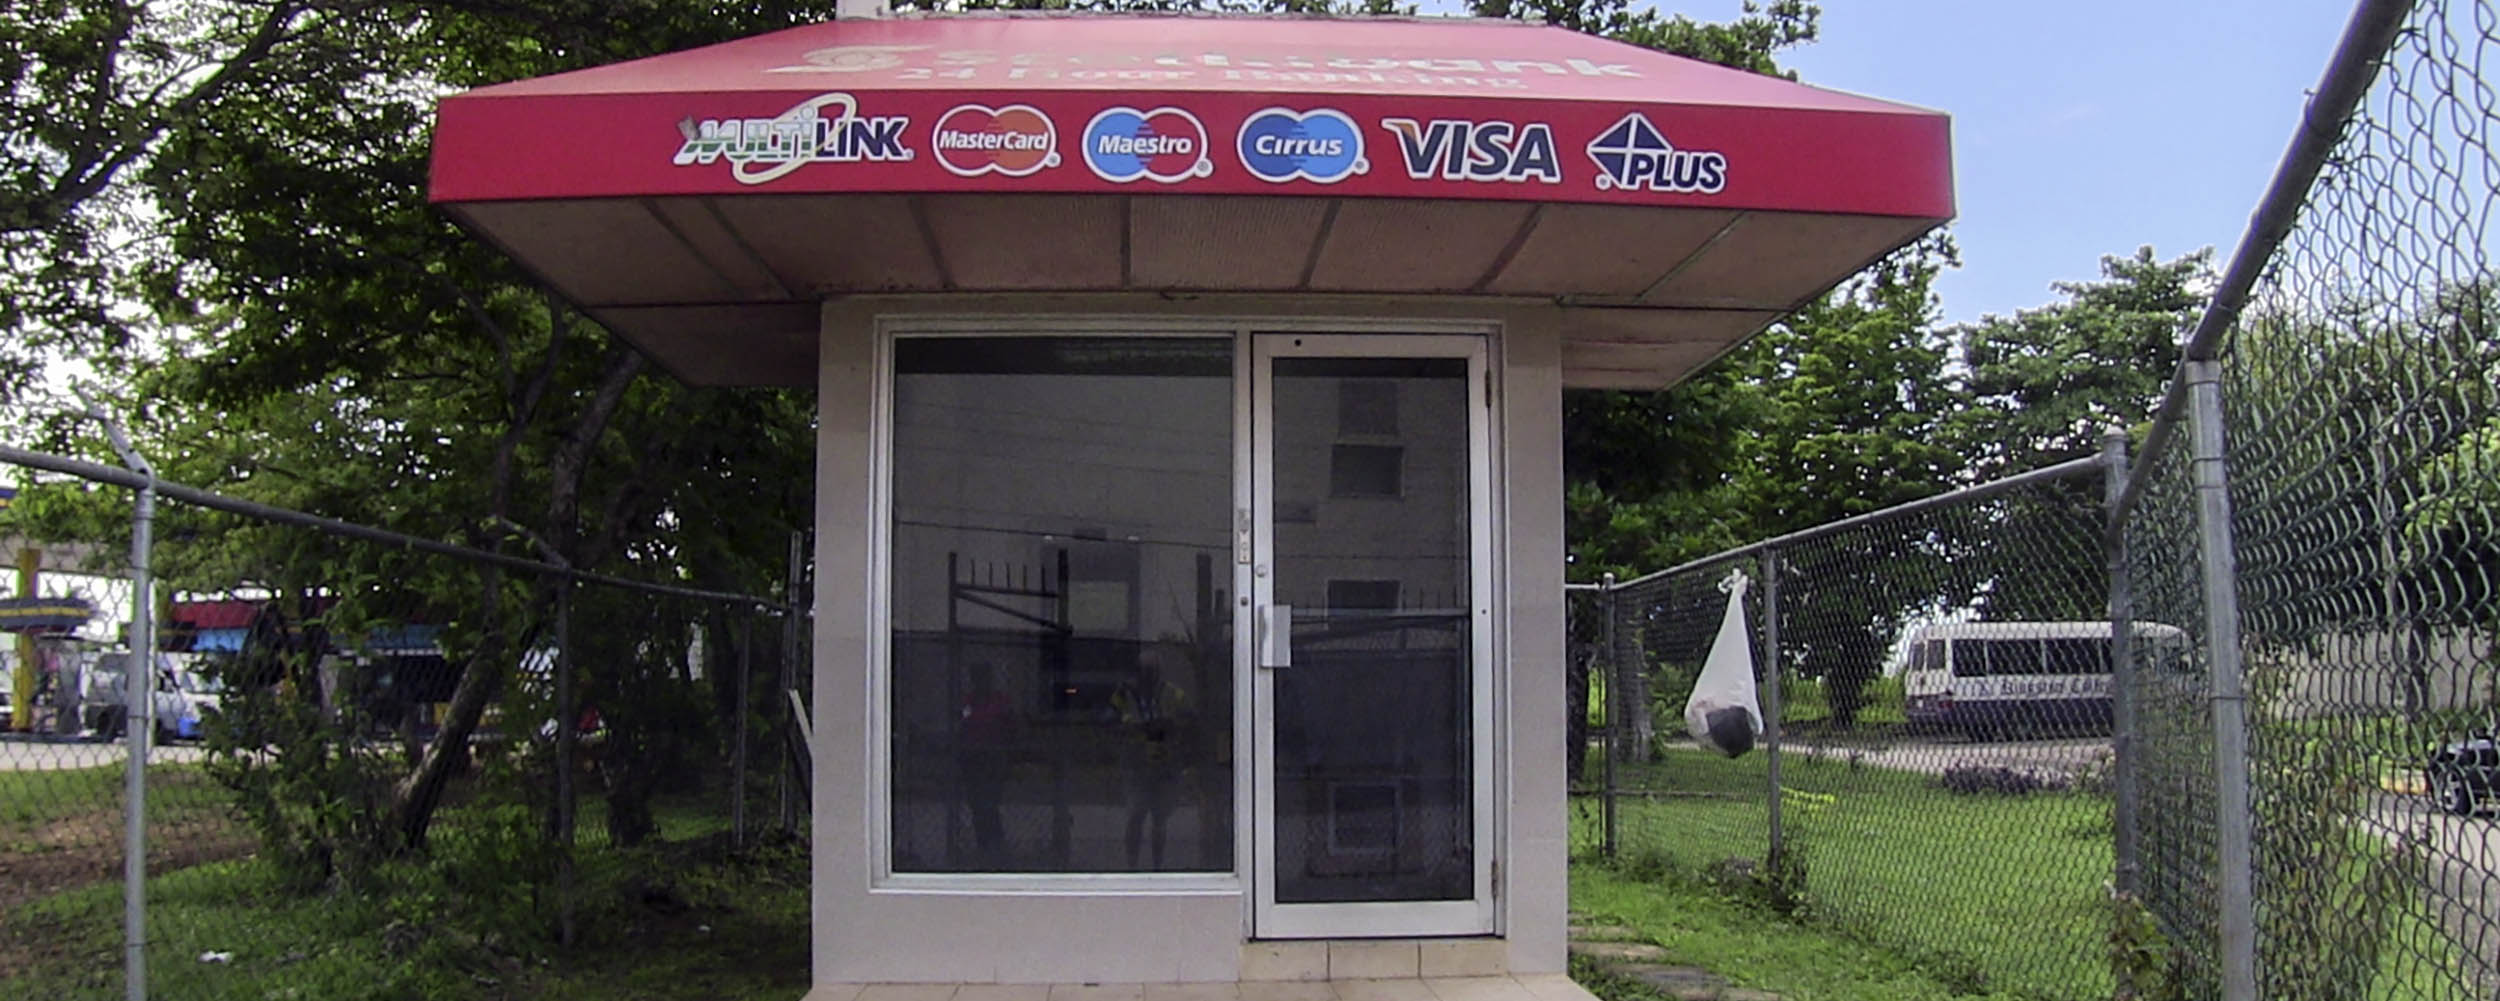 Scoticabank ATM - Rutland Point - Negril Jamaica